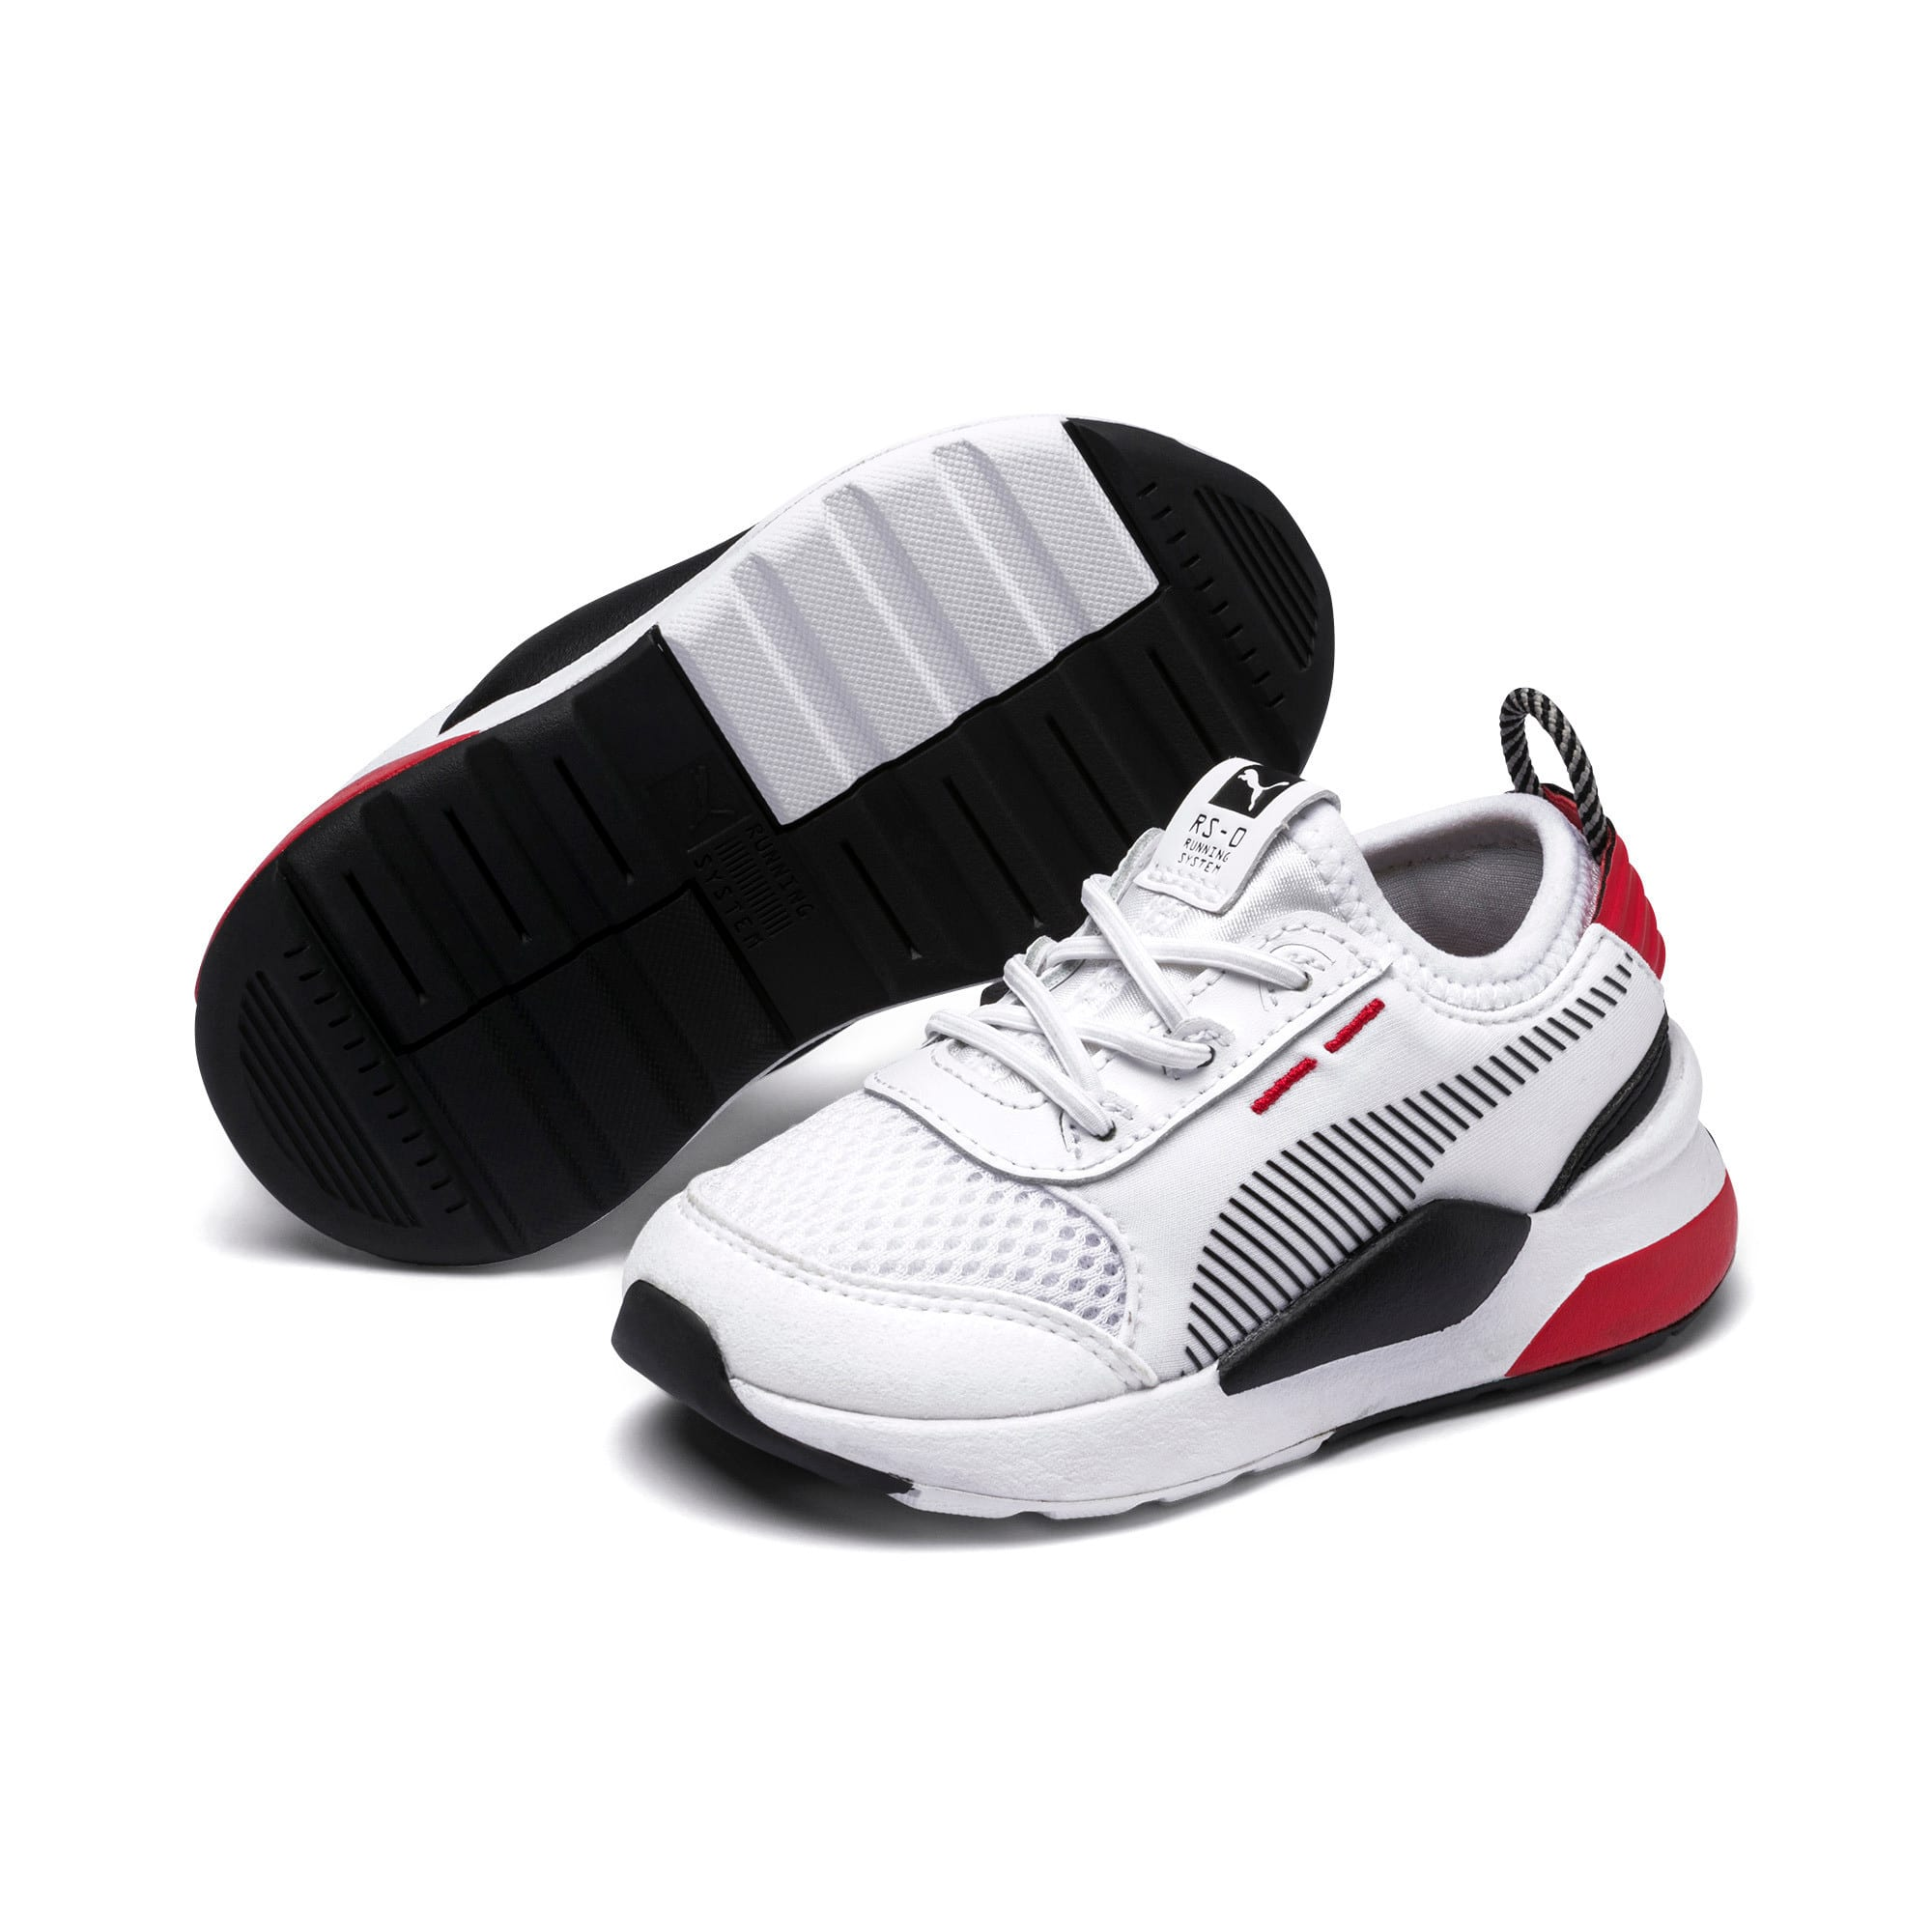 Thumbnail 2 of RS-0 Winter Inj Toys INF Shoes, Puma White-High Risk Red, medium